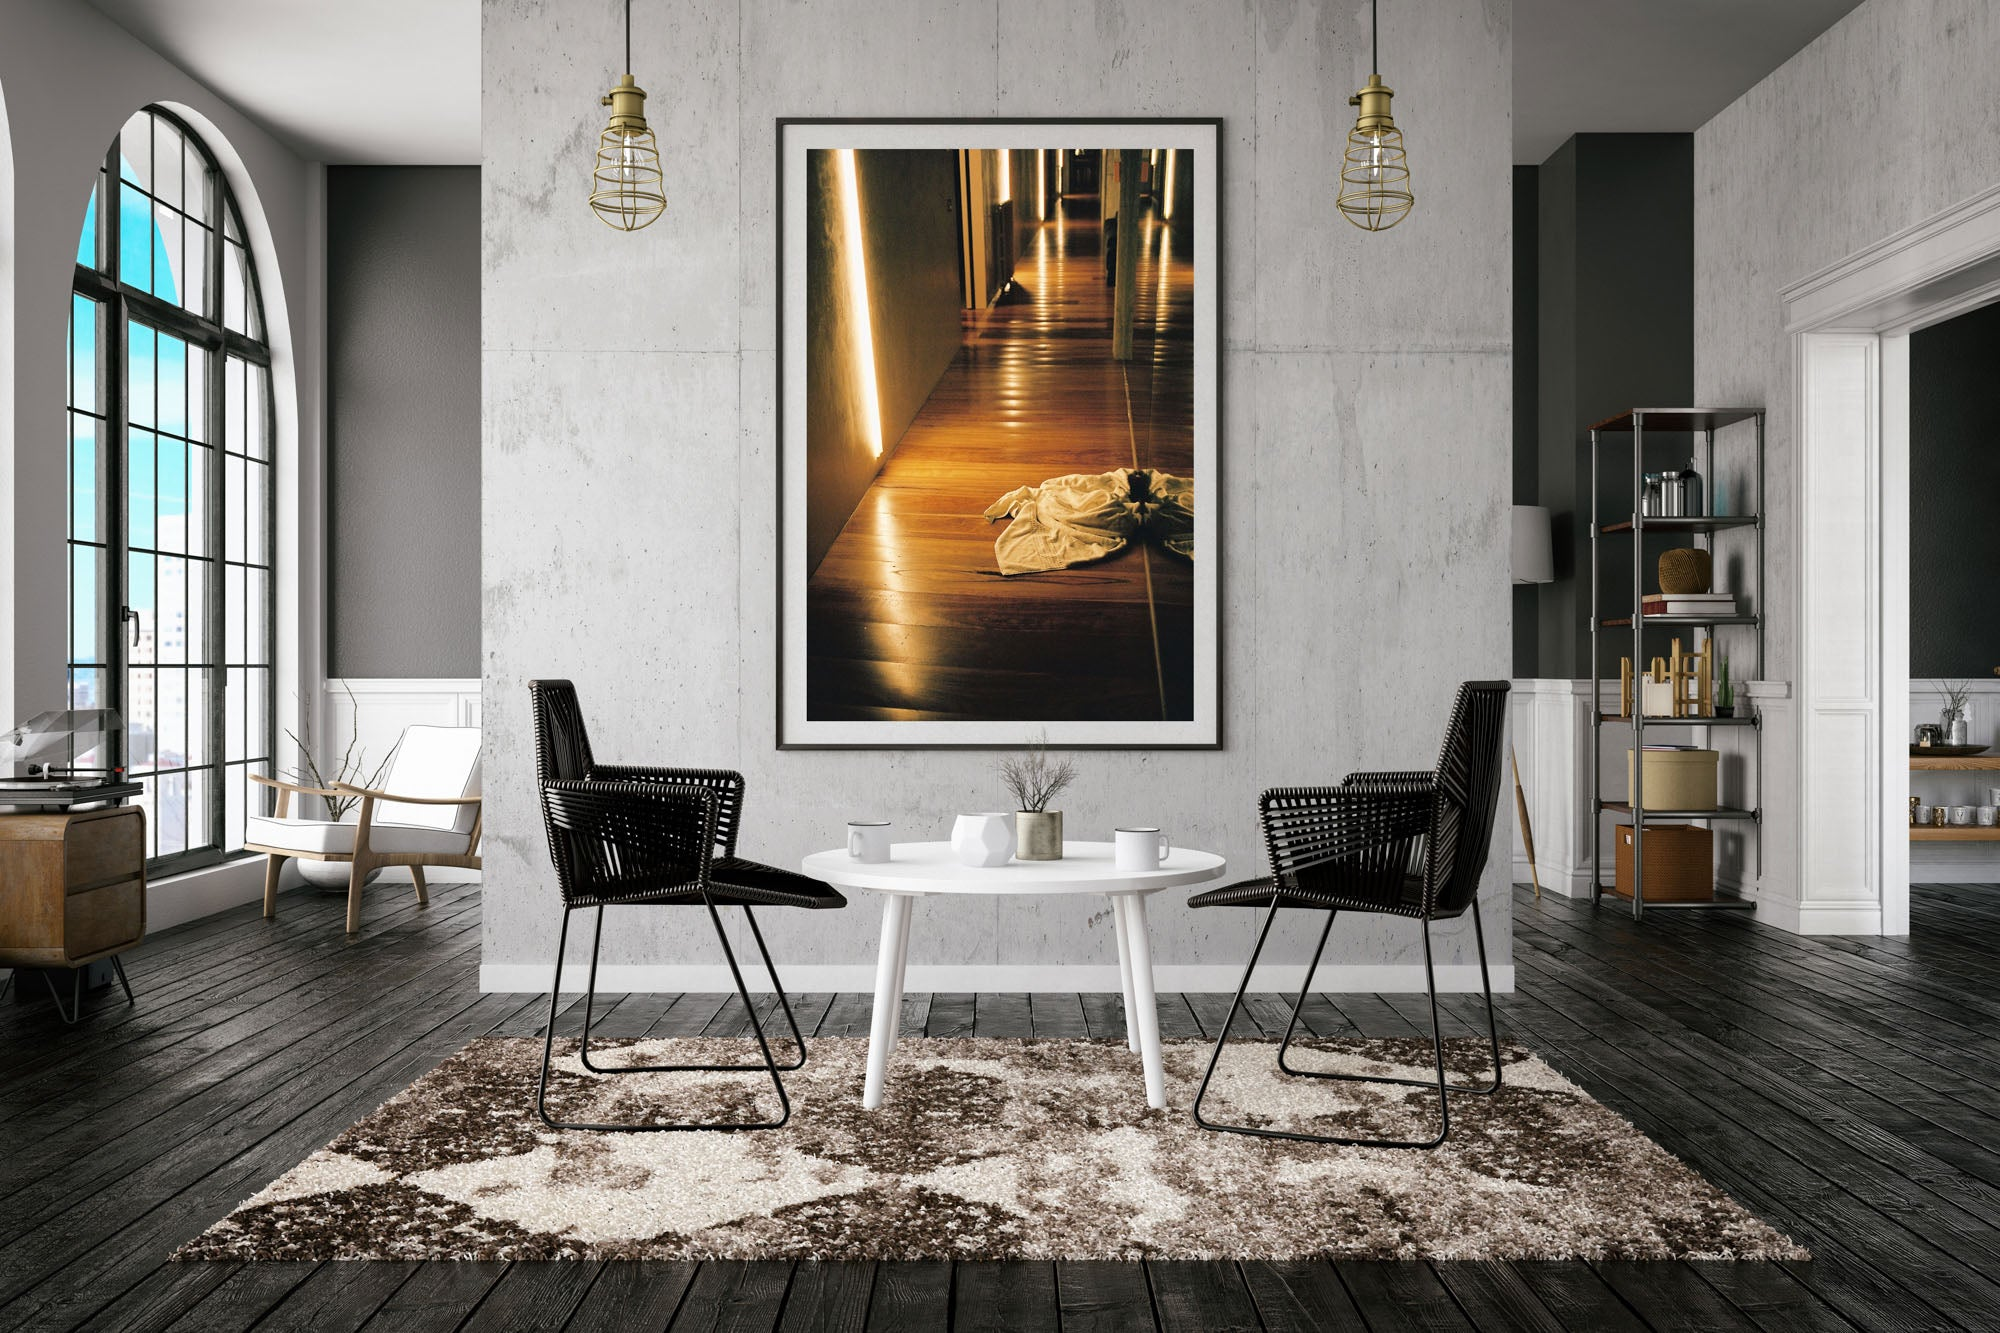 """A photograph with a white towel on the wooden floor in a hallway"". Artwork, Prints, wall art, GoldCoast Queensland Australia, Photographic prints, Ocean Beach, Framed artwork, Beach Posters   Film photography, Vintage photo style,  Interior design, Film photography Pictures sun & surf, Abstract"